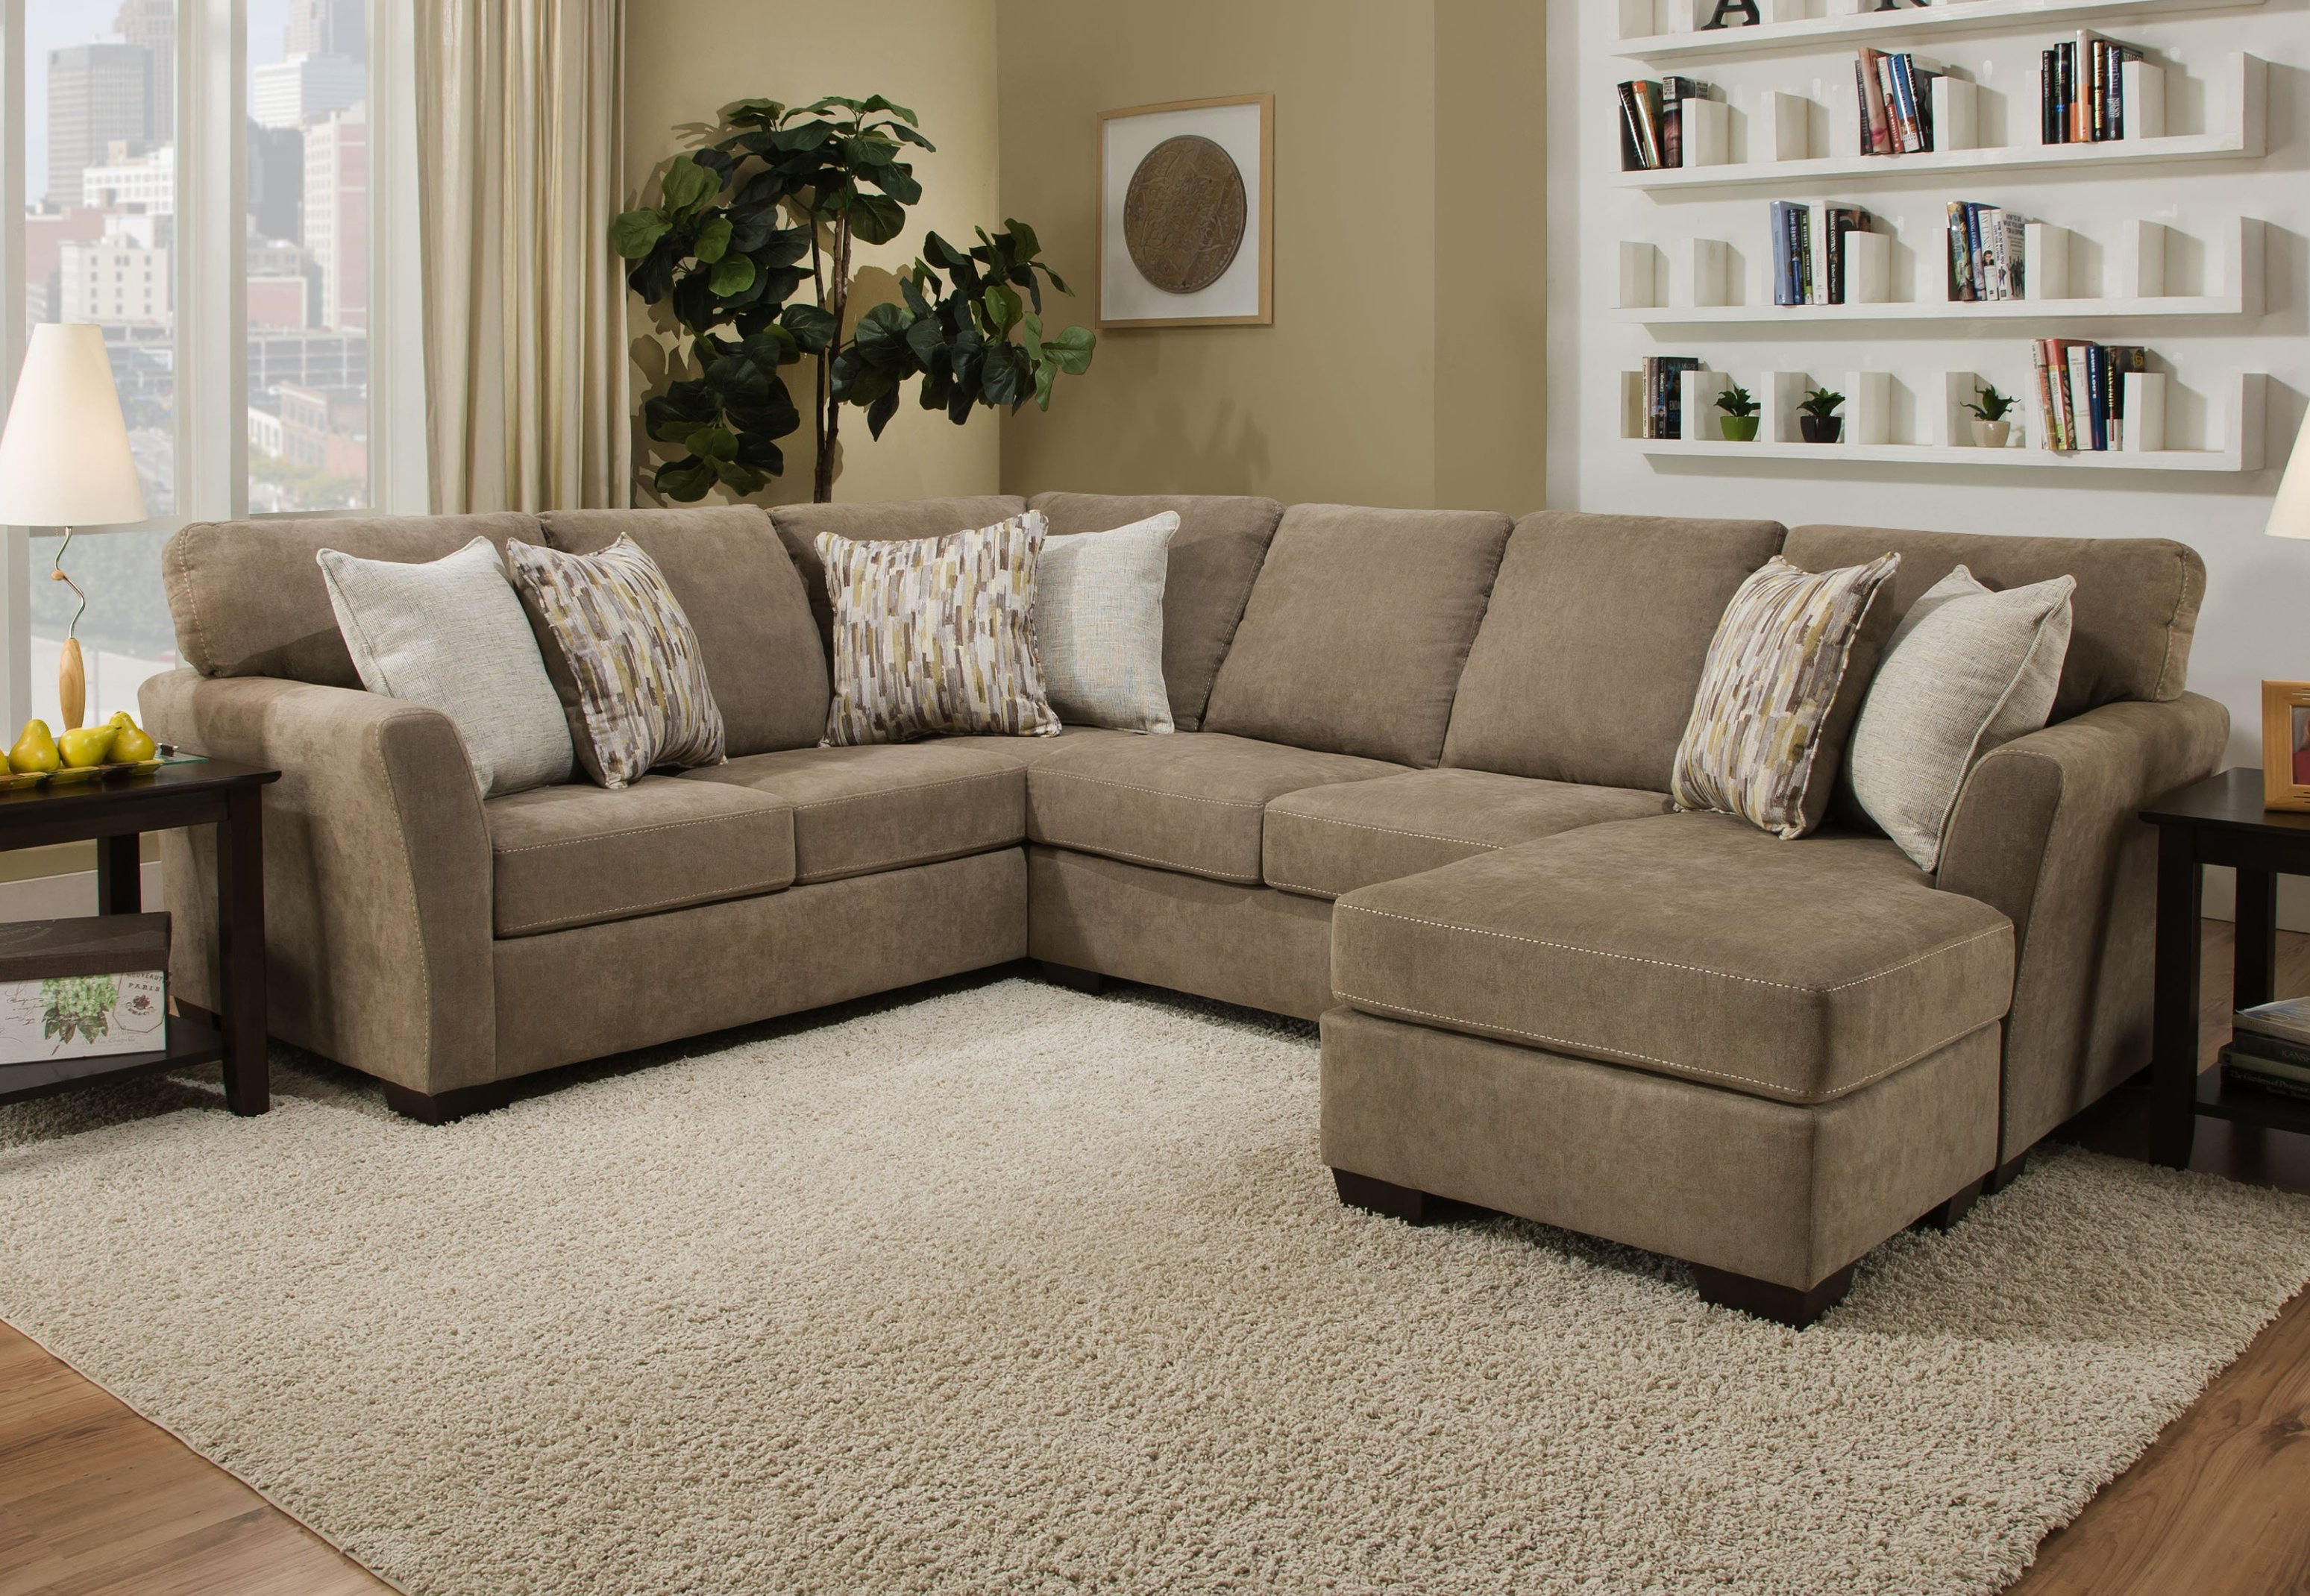 7058 Sectional with Reversible Chaise - Mocha $1219.99